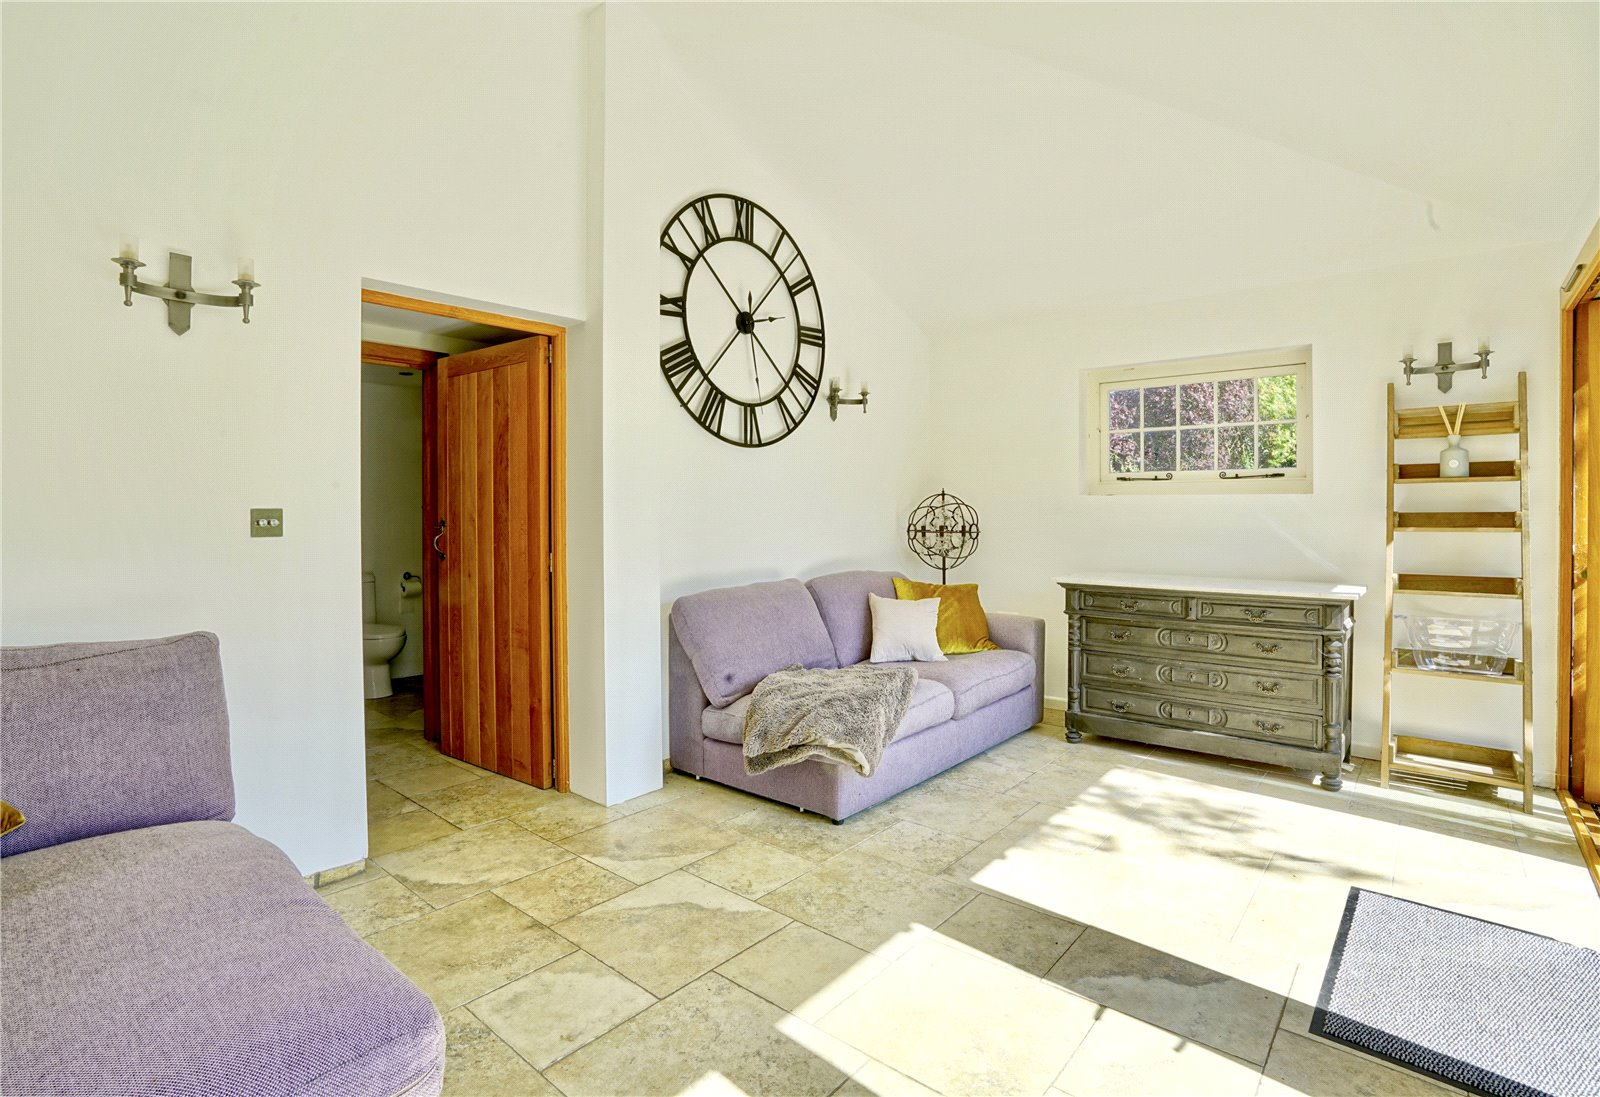 3 bed house for sale in Great Staughton  - Property Image 14